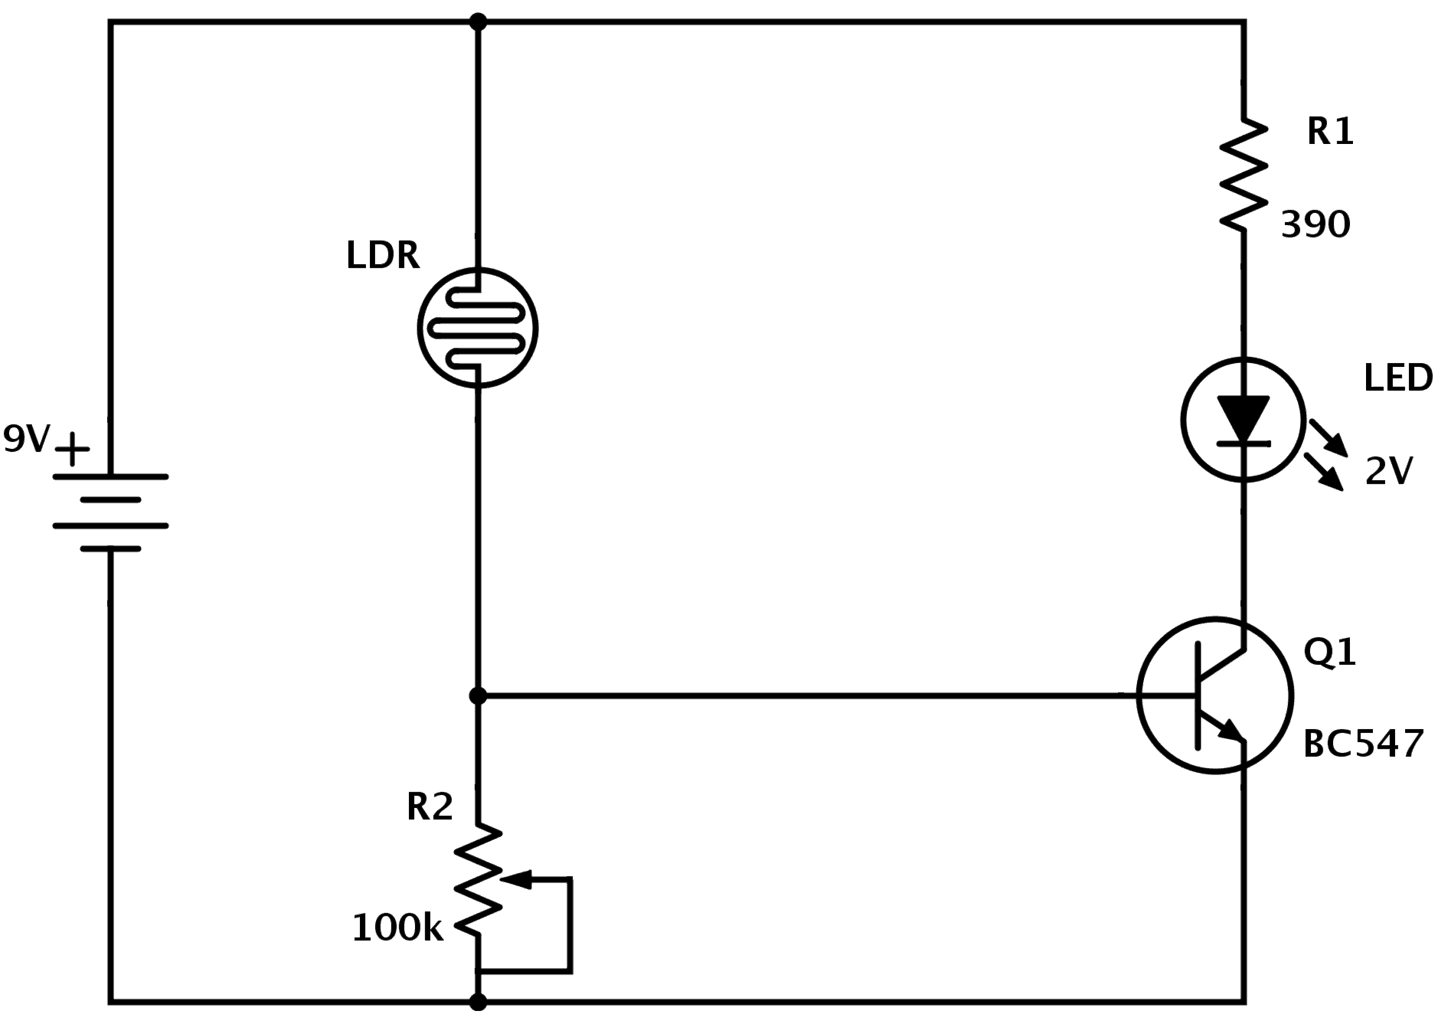 Ldr Circuit Diagram Build Electronic Circuits Step 7 Block